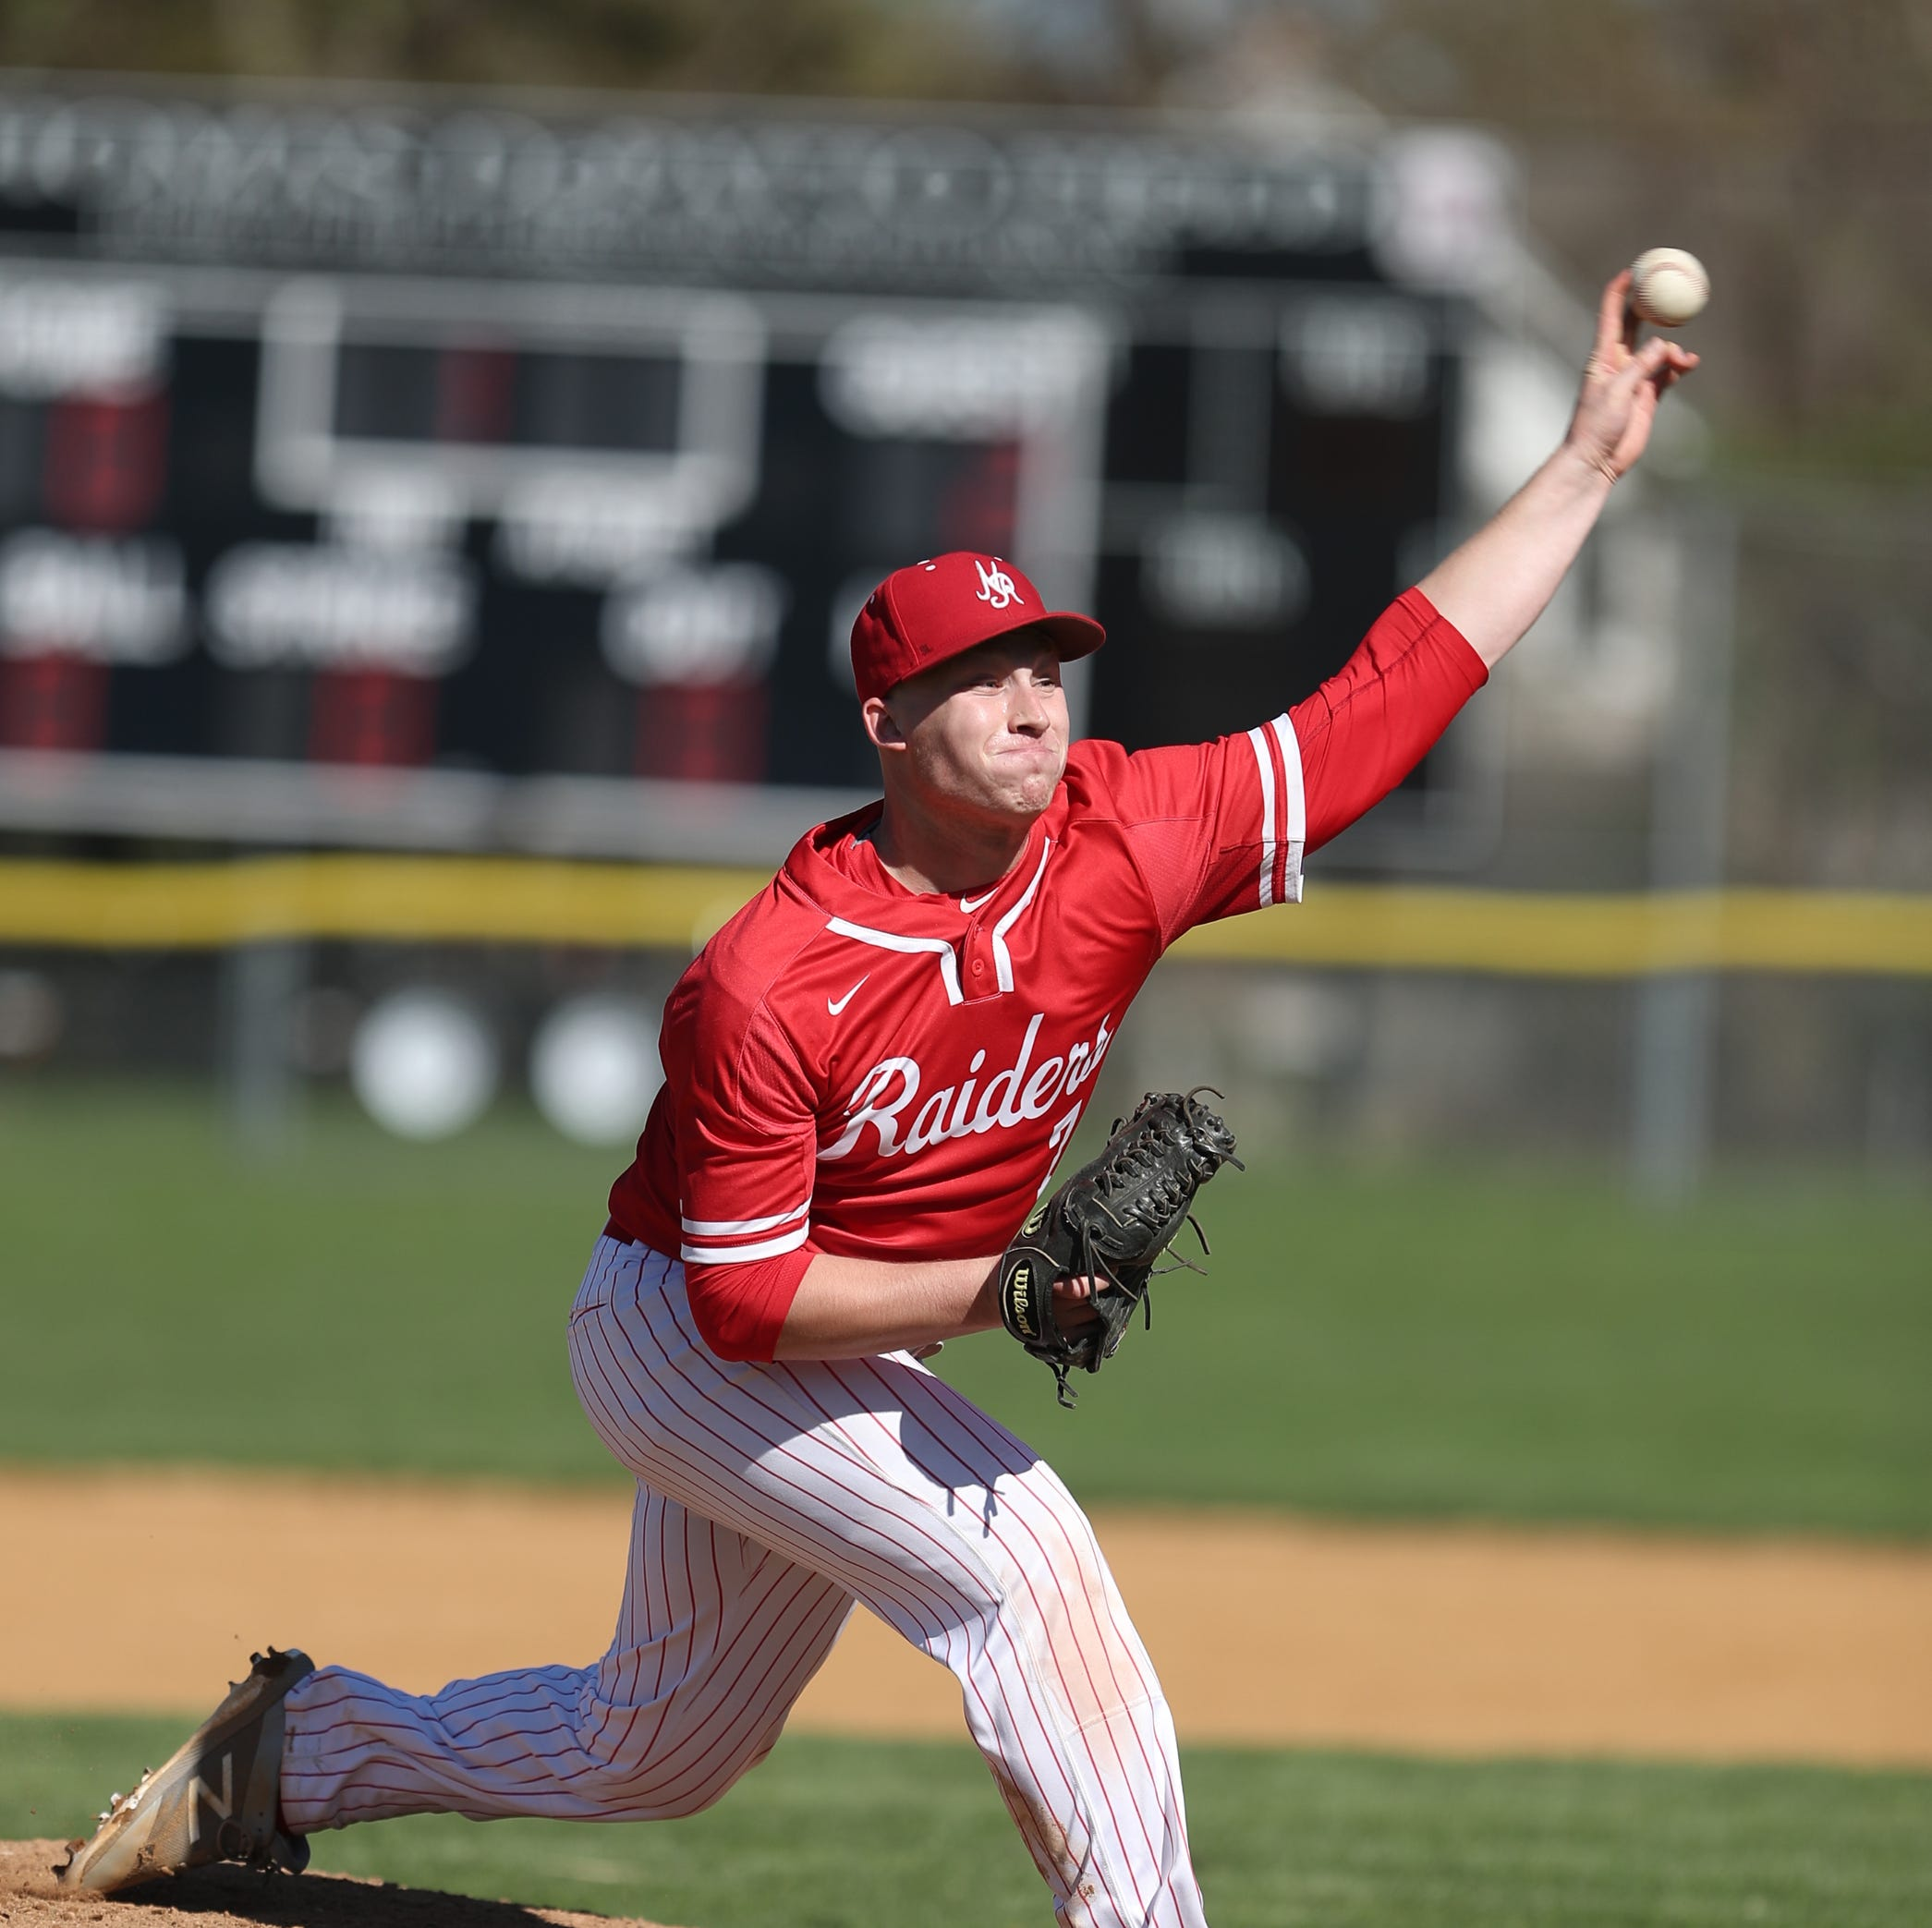 Baseball: North Rockland, Sean Liquori beat Clarkstown South to continue turnaround